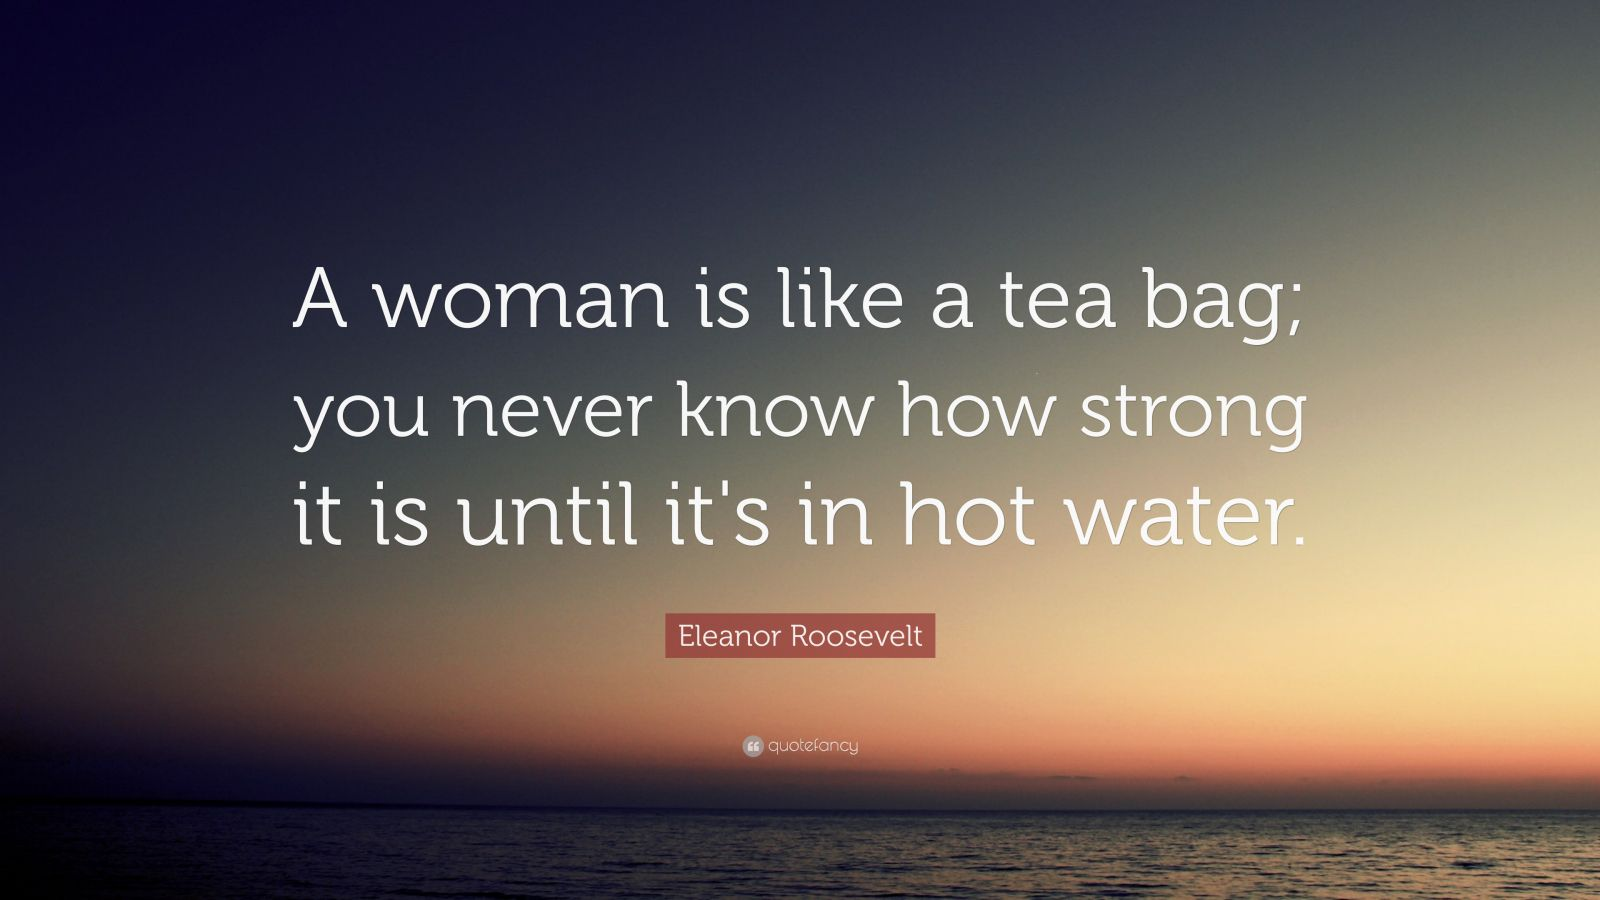 Eleanor Roosevelt Quotes Water Hot Woman